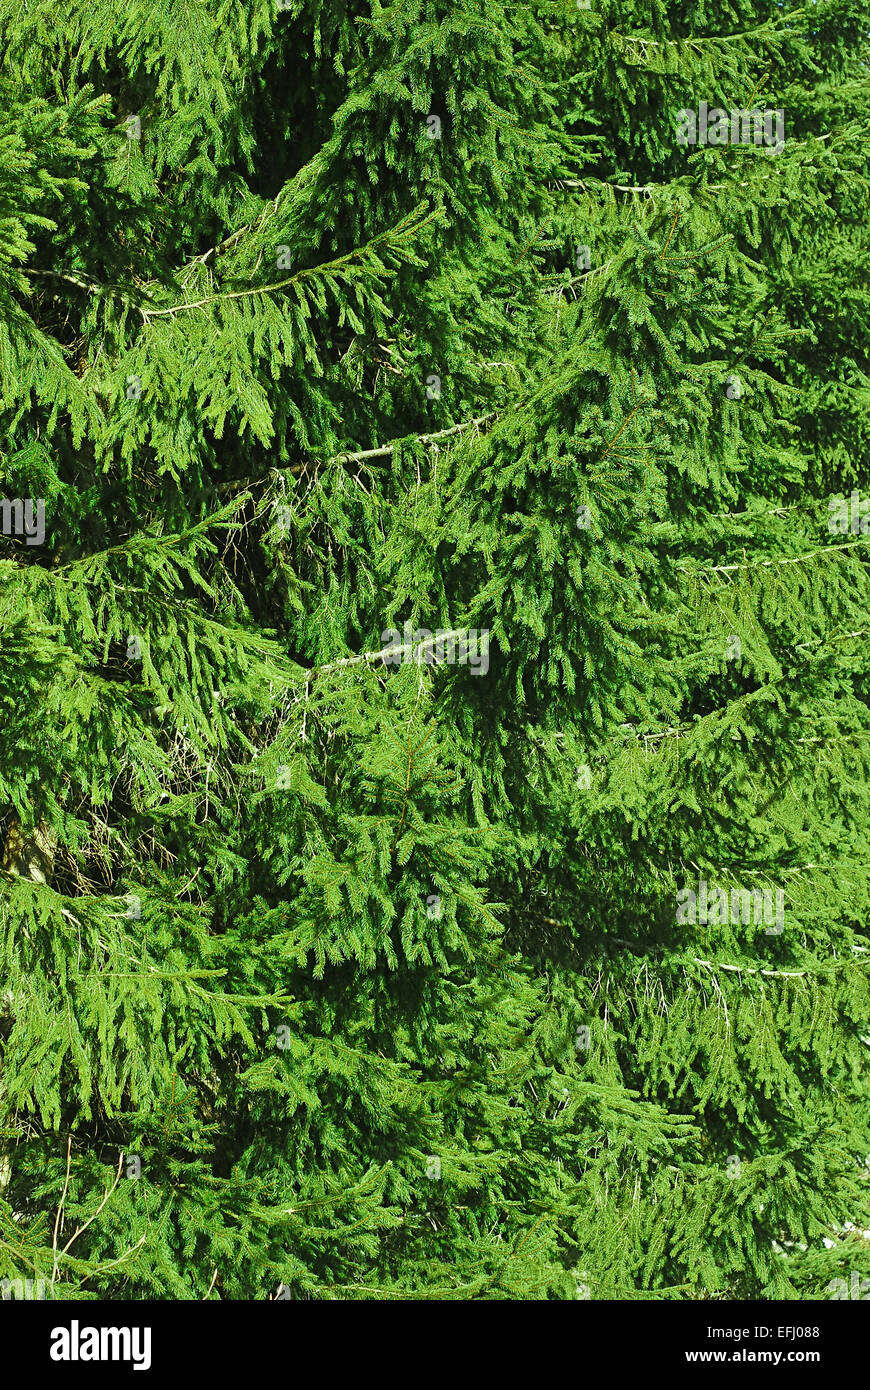 spruce fir tree woods natural background - Stock Image